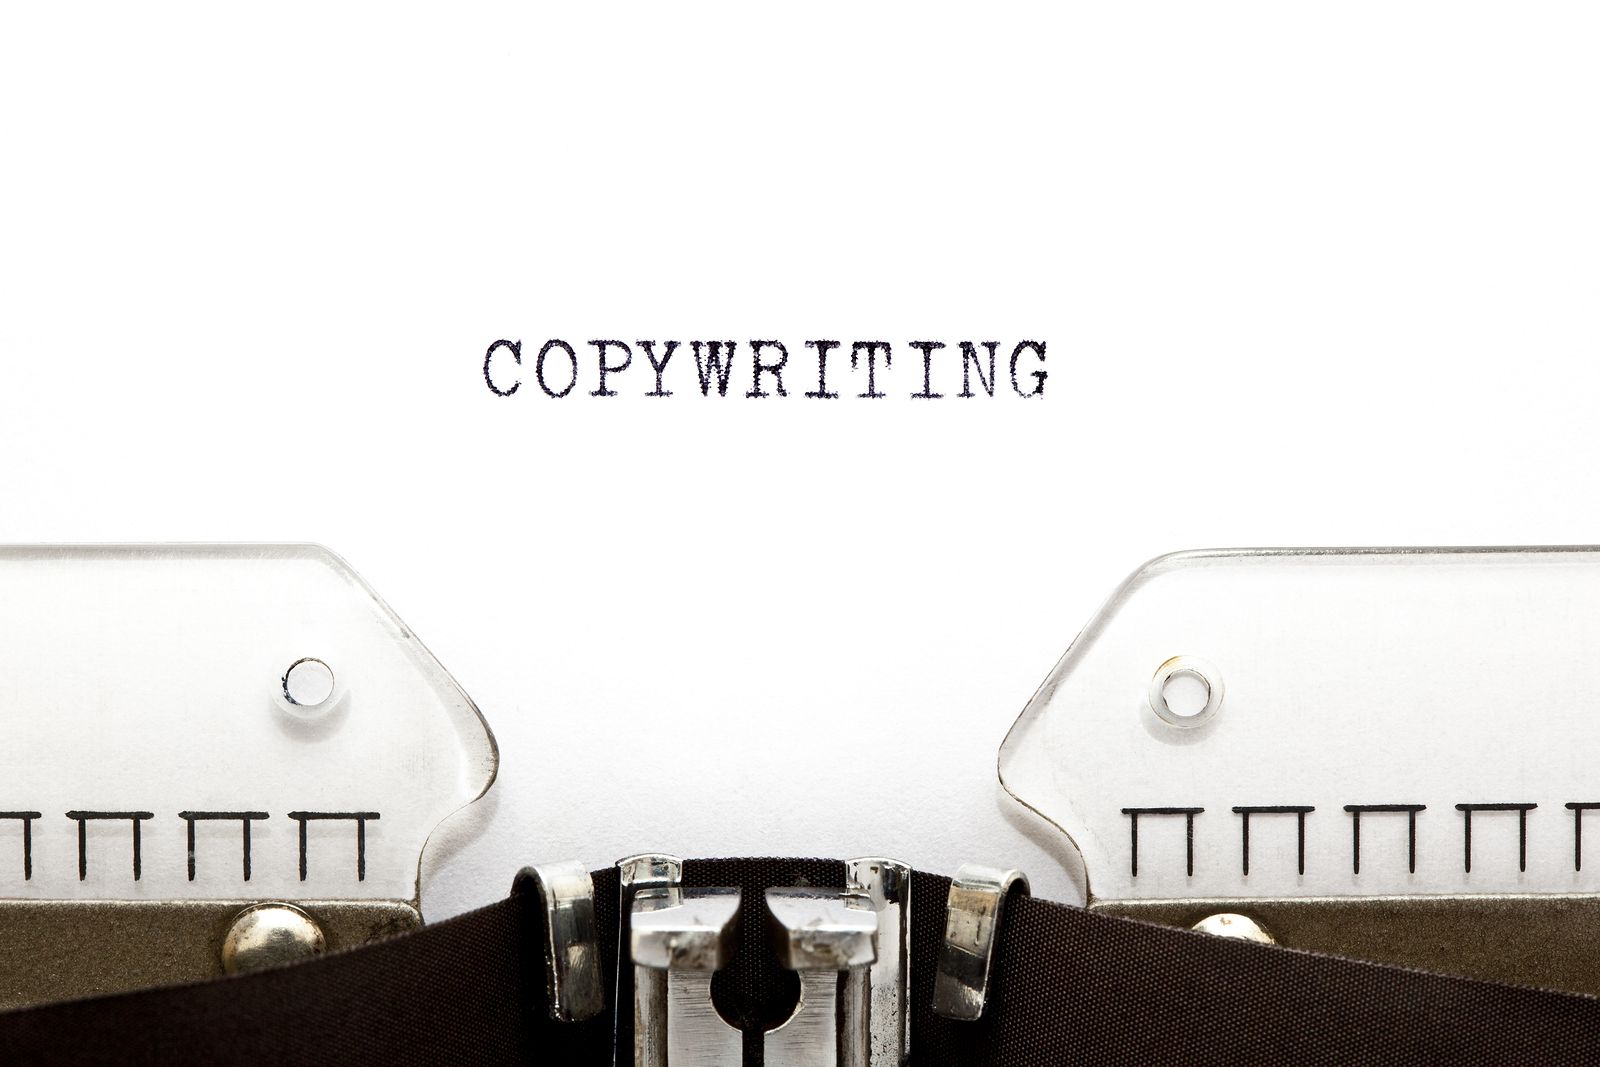 creative, digital and media Apprenticeships copywriting